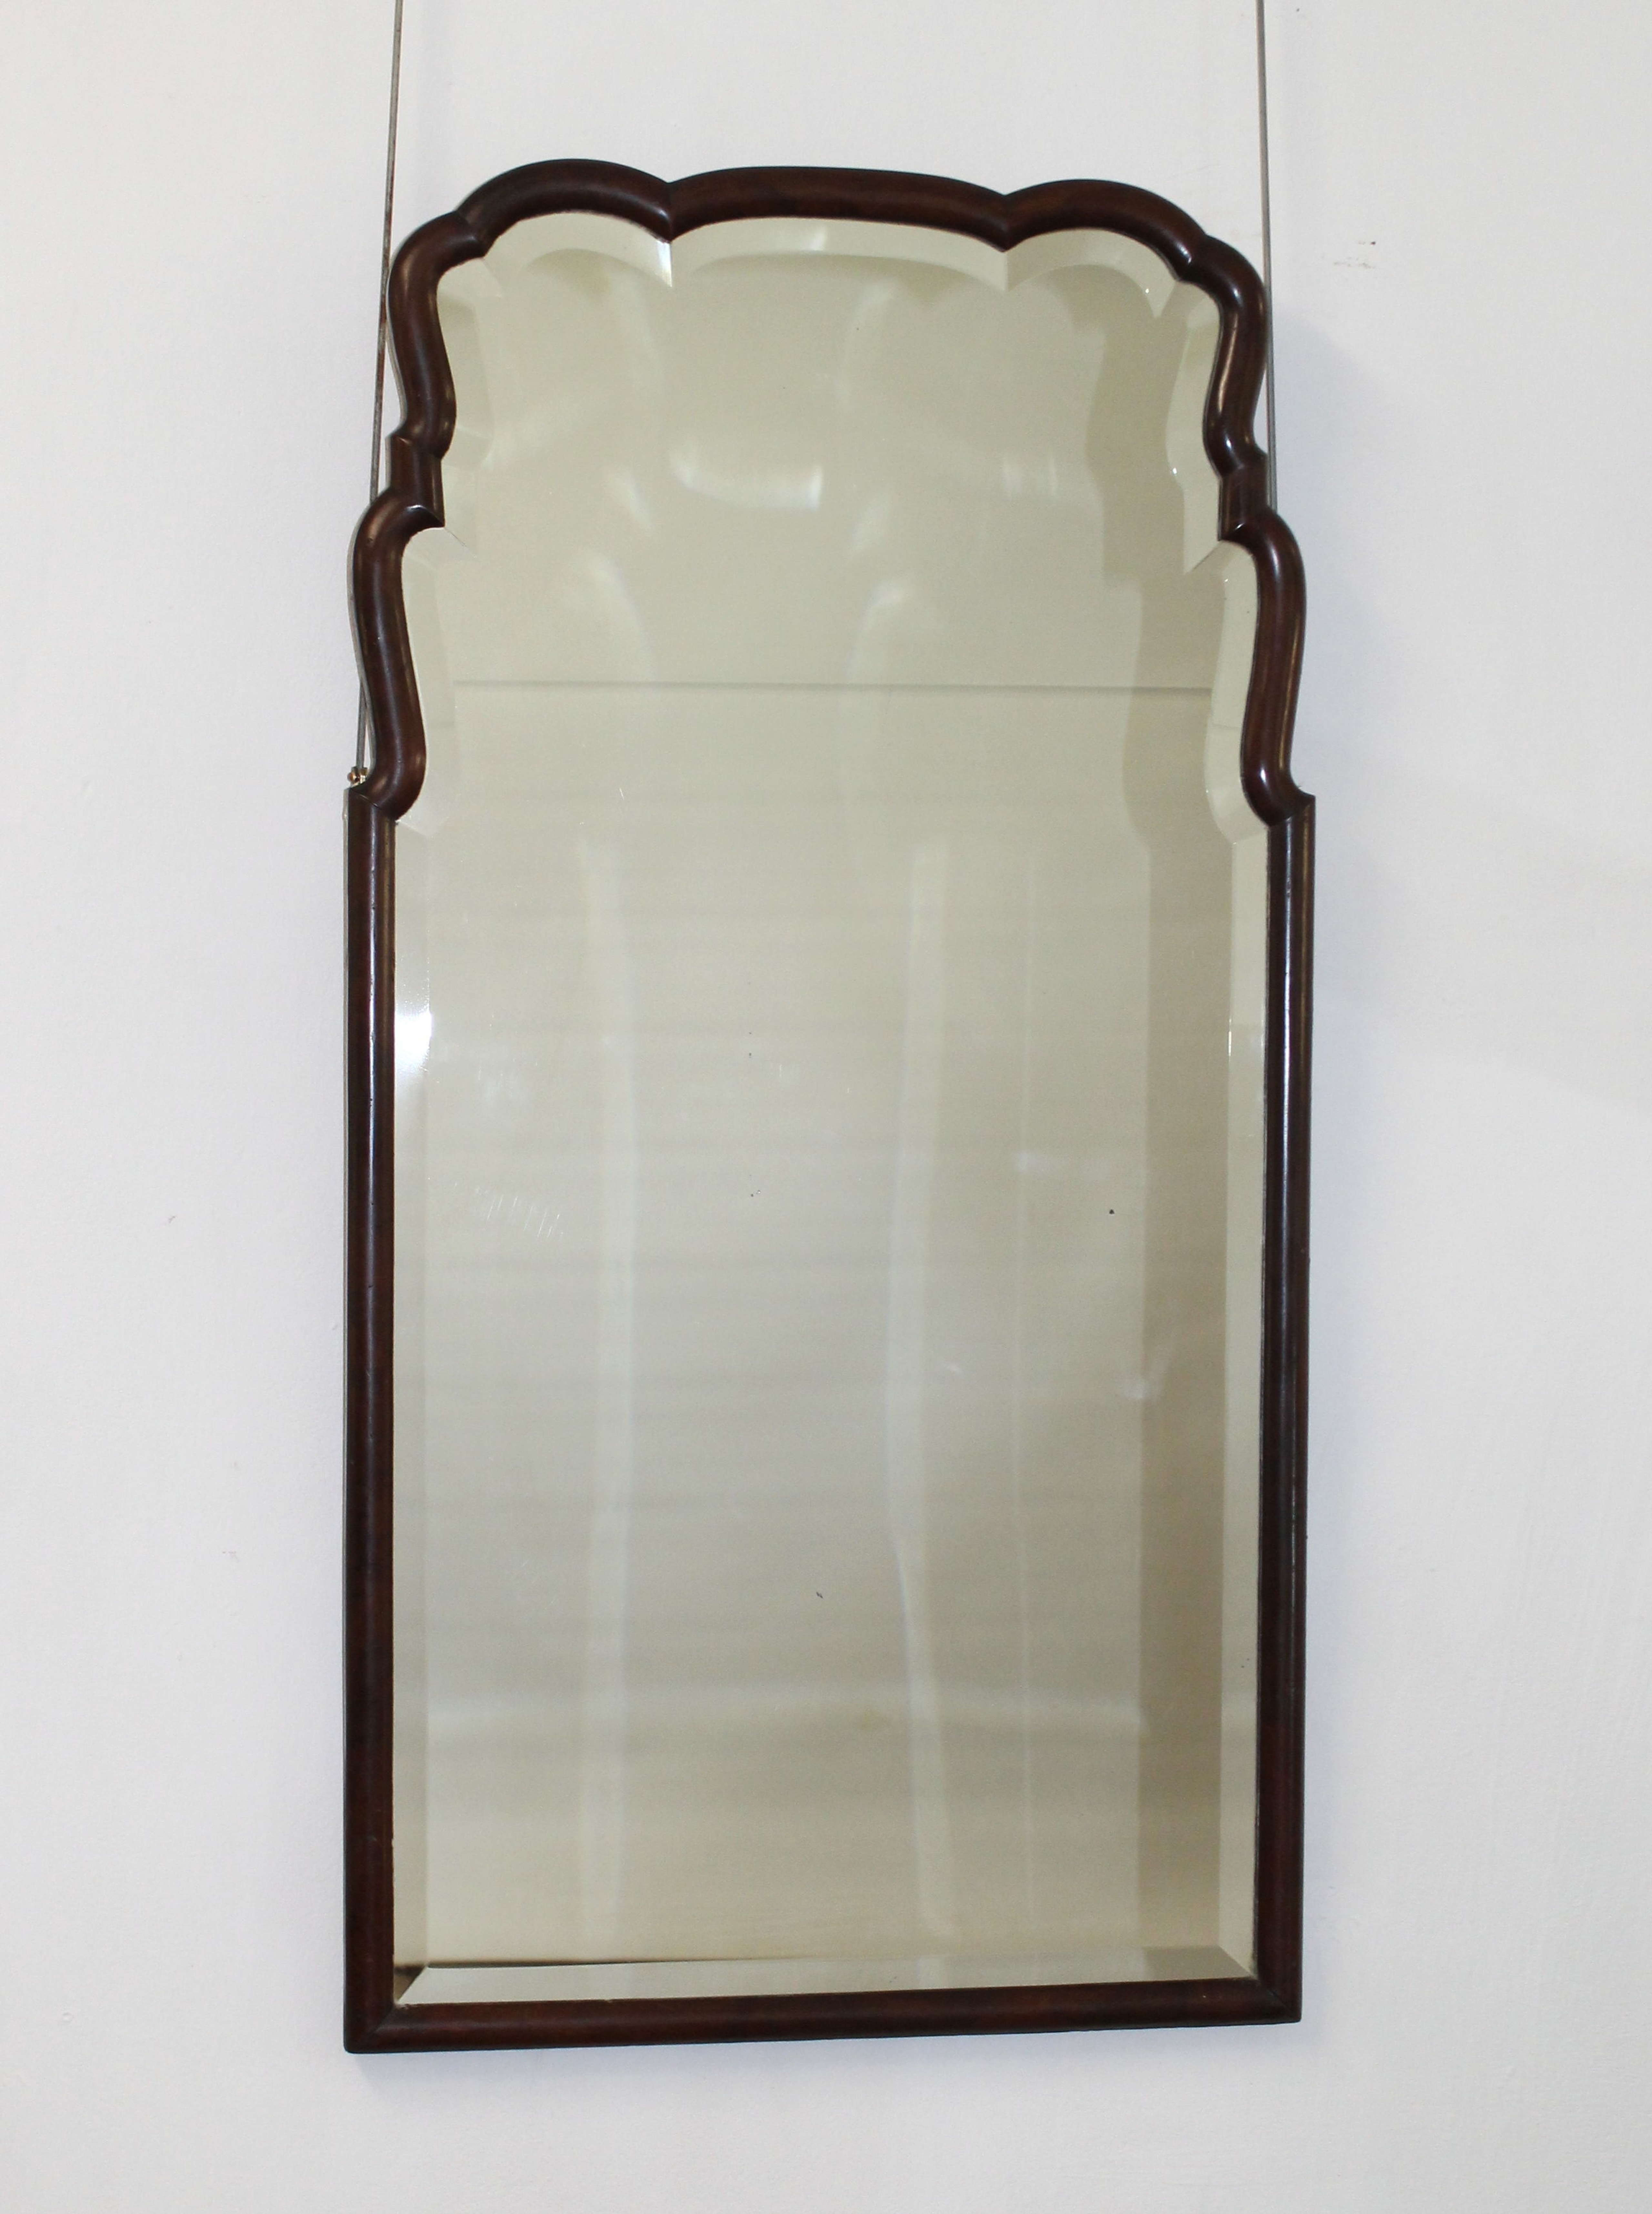 Queen Anne style, wood framed, bevelled, antique mirror